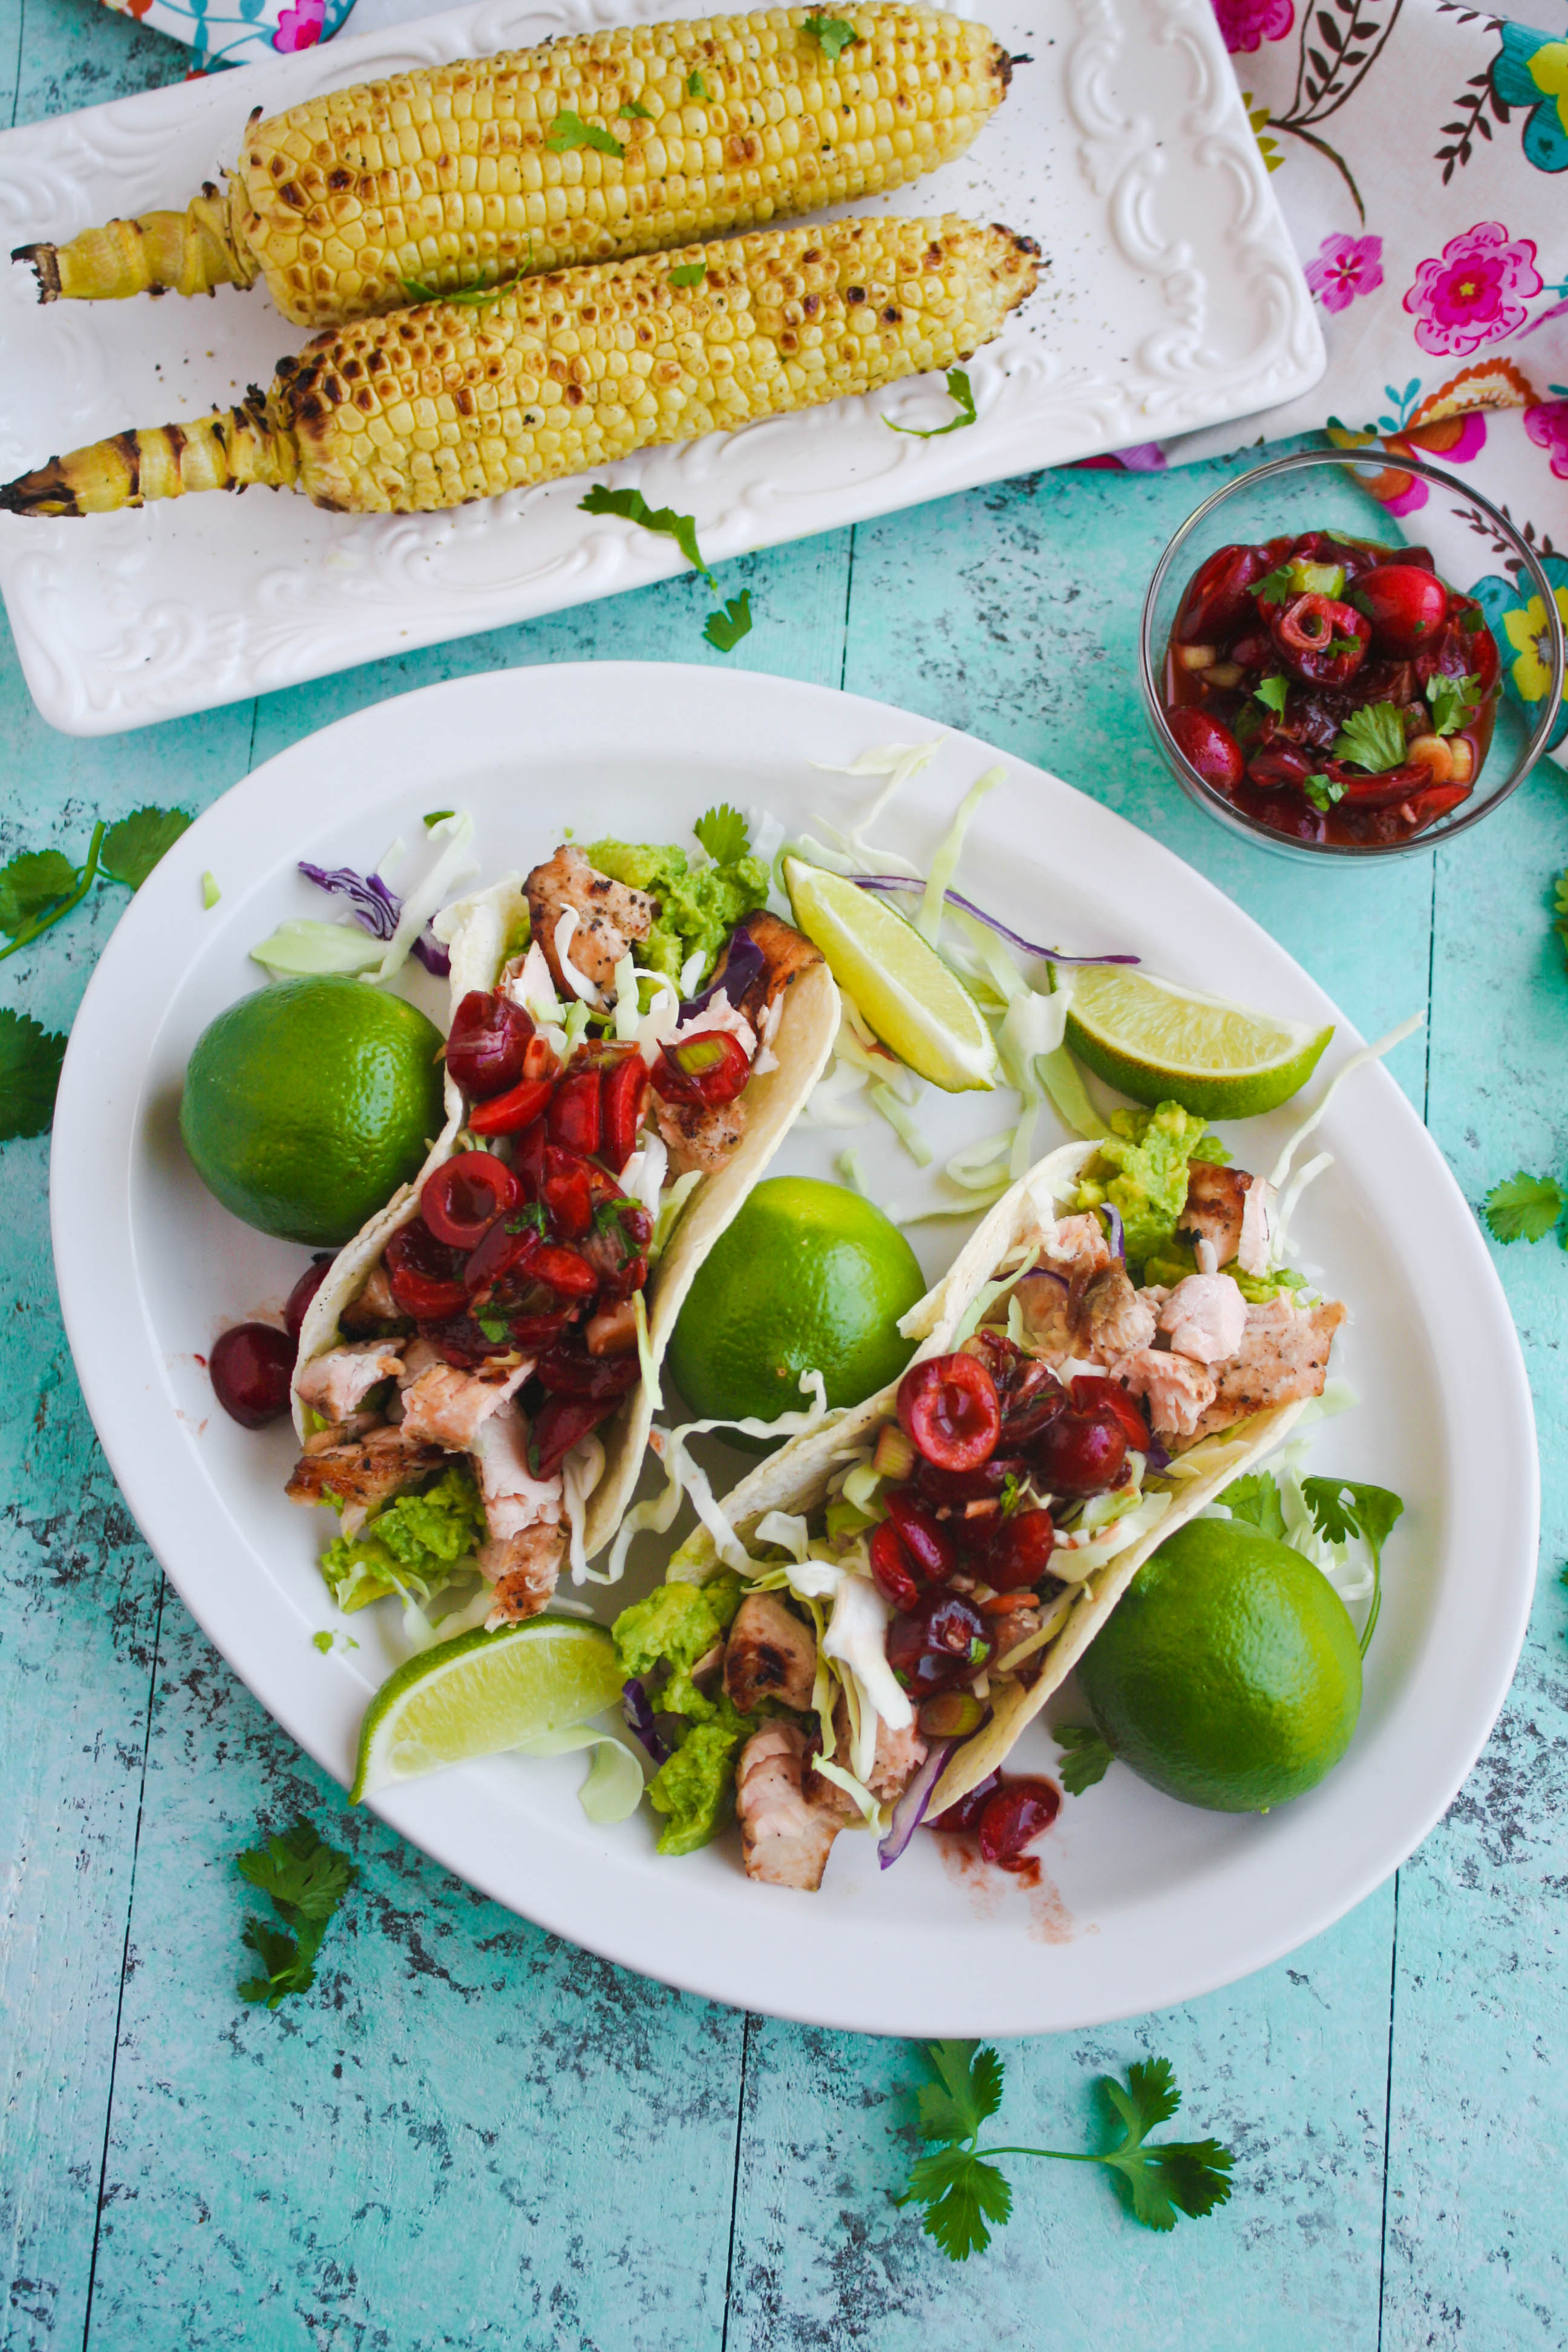 Grilled Salmon Tacos with Fresh Cherry-Chipotle Salsa is a perfect summer dish. Fresh cherries are perfect to top the salmon! Get your grill on!